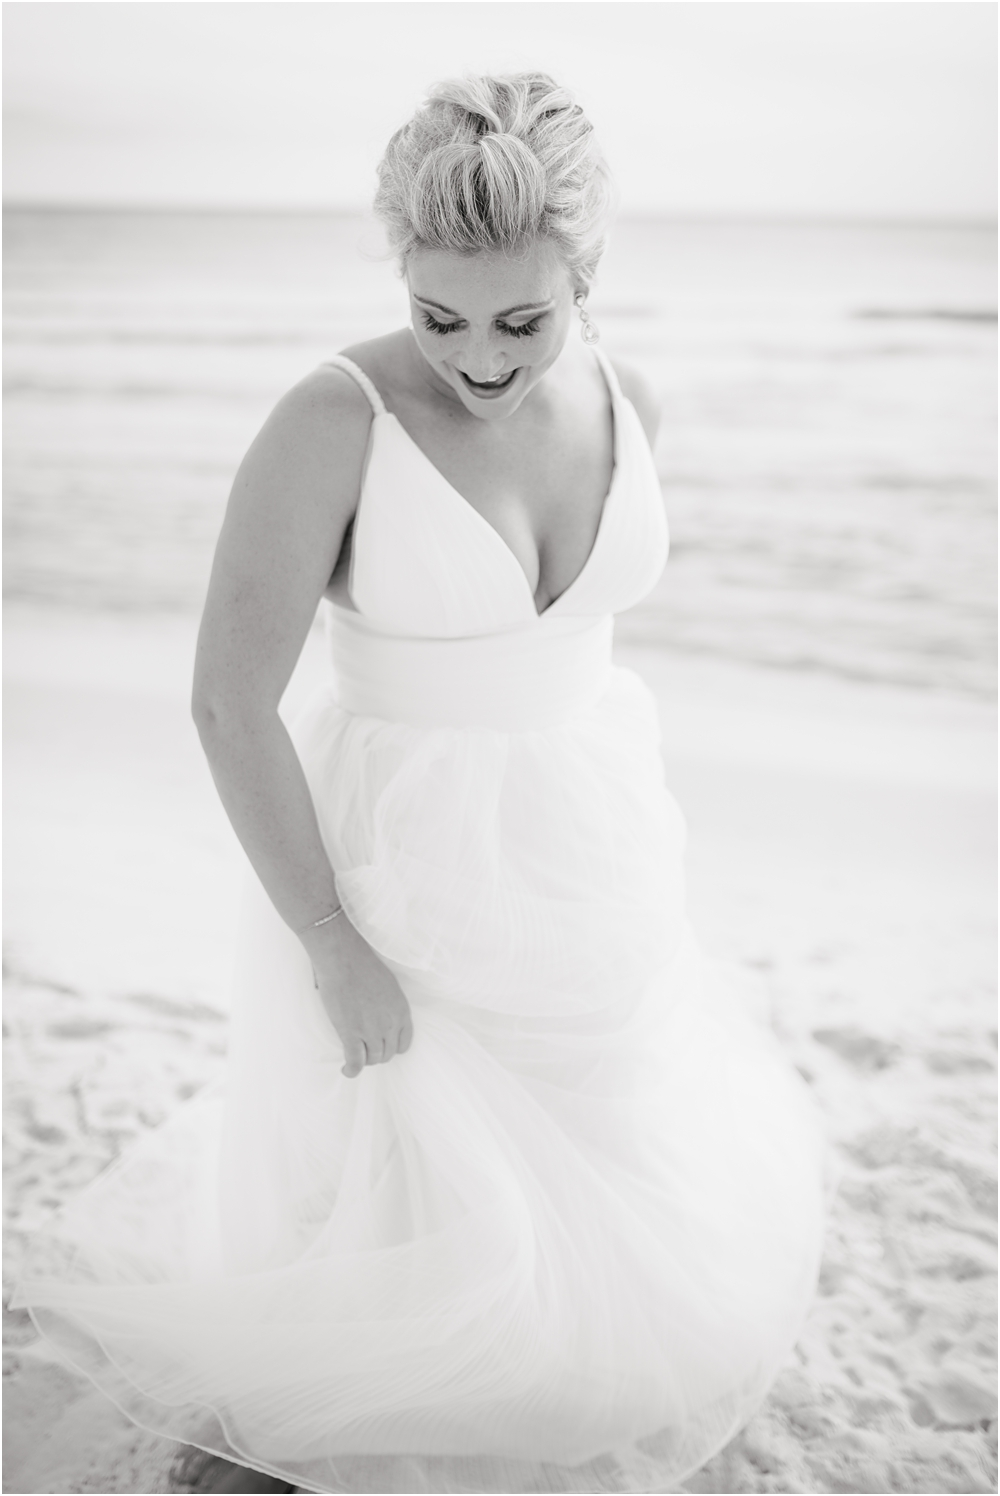 wernert-florida-beach-elopement-wedding-photographer-kiersten-grant-70.jpg